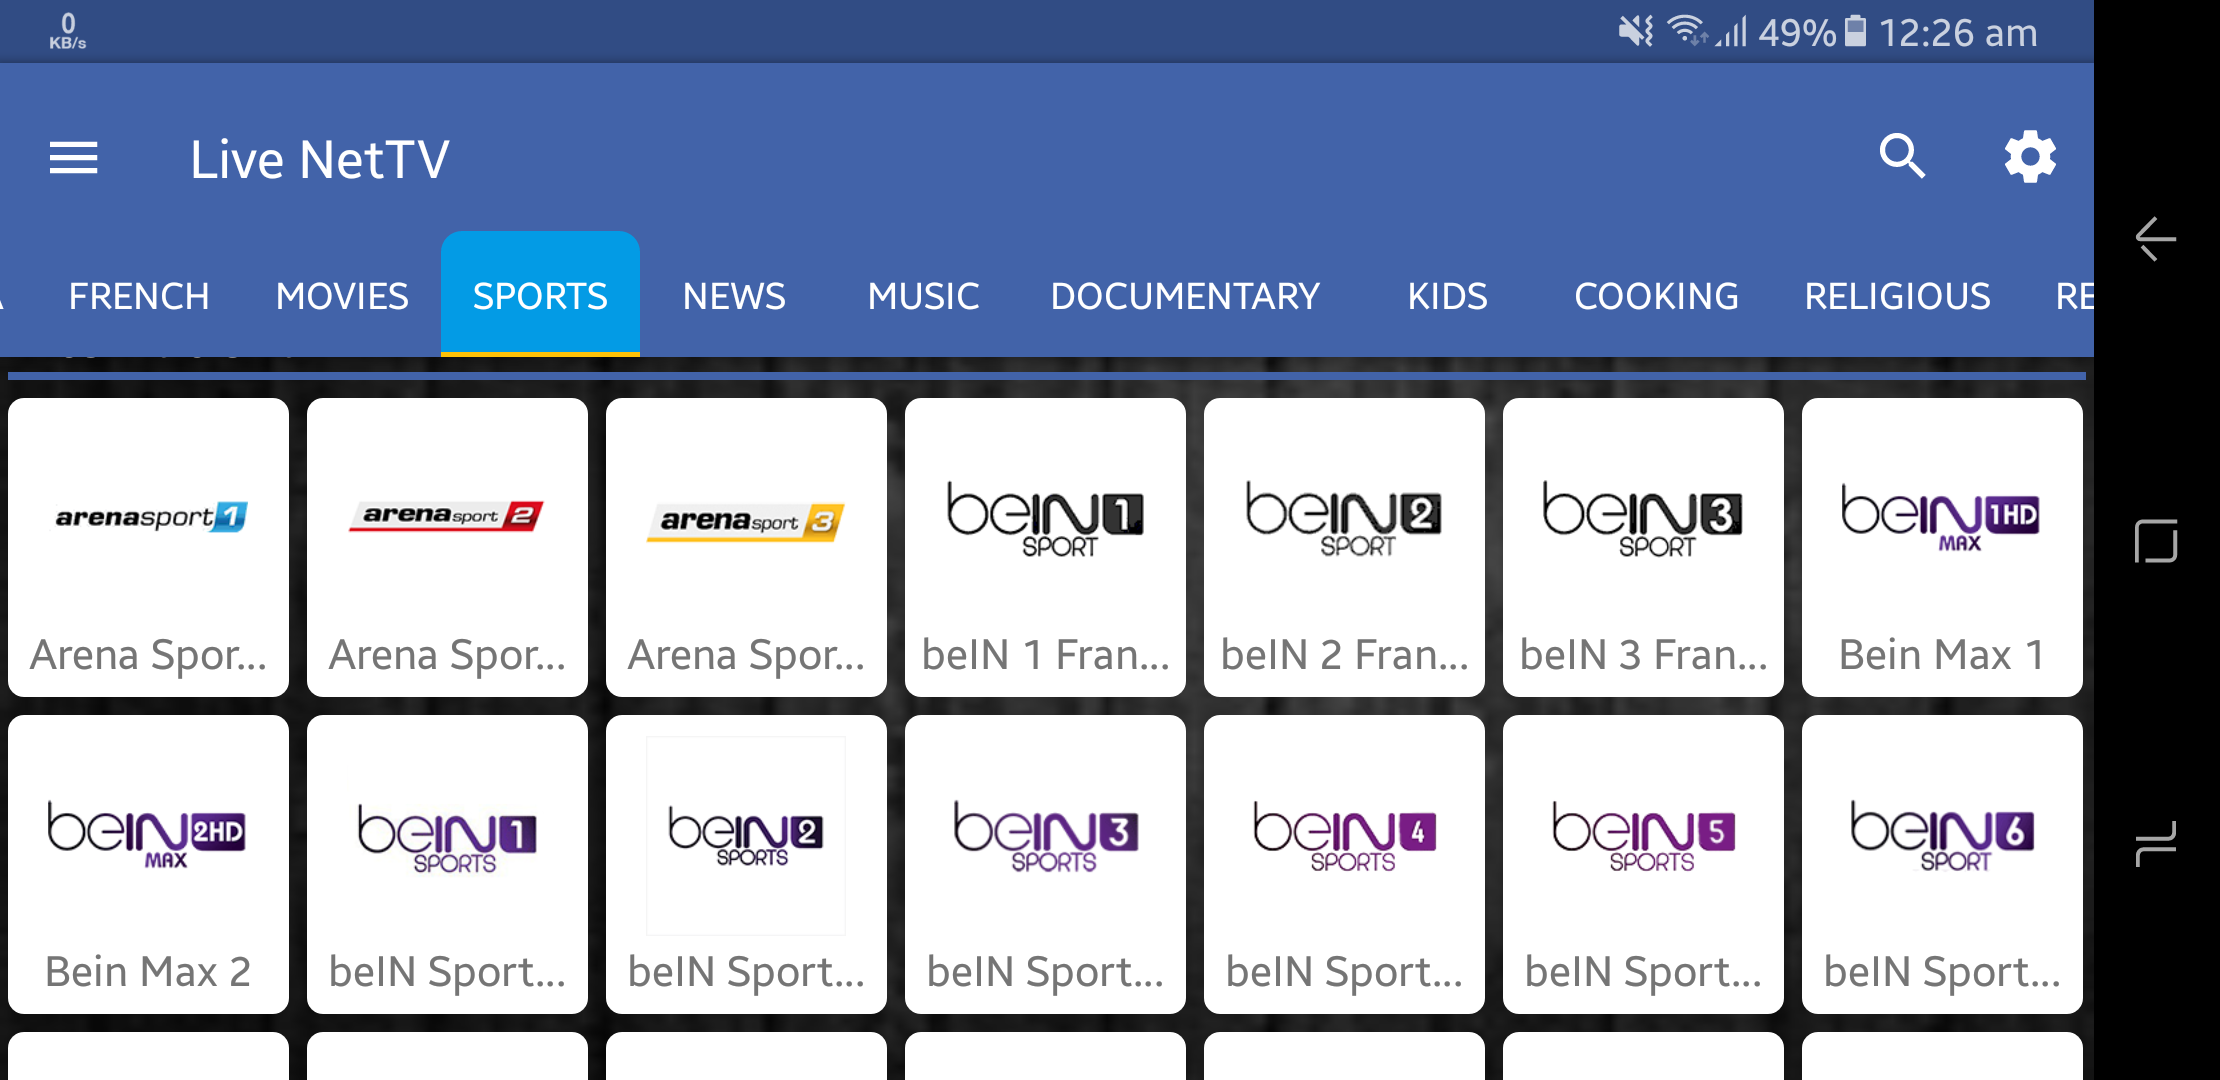 Best_Free_Live_TV_App_Android_Apk_2018